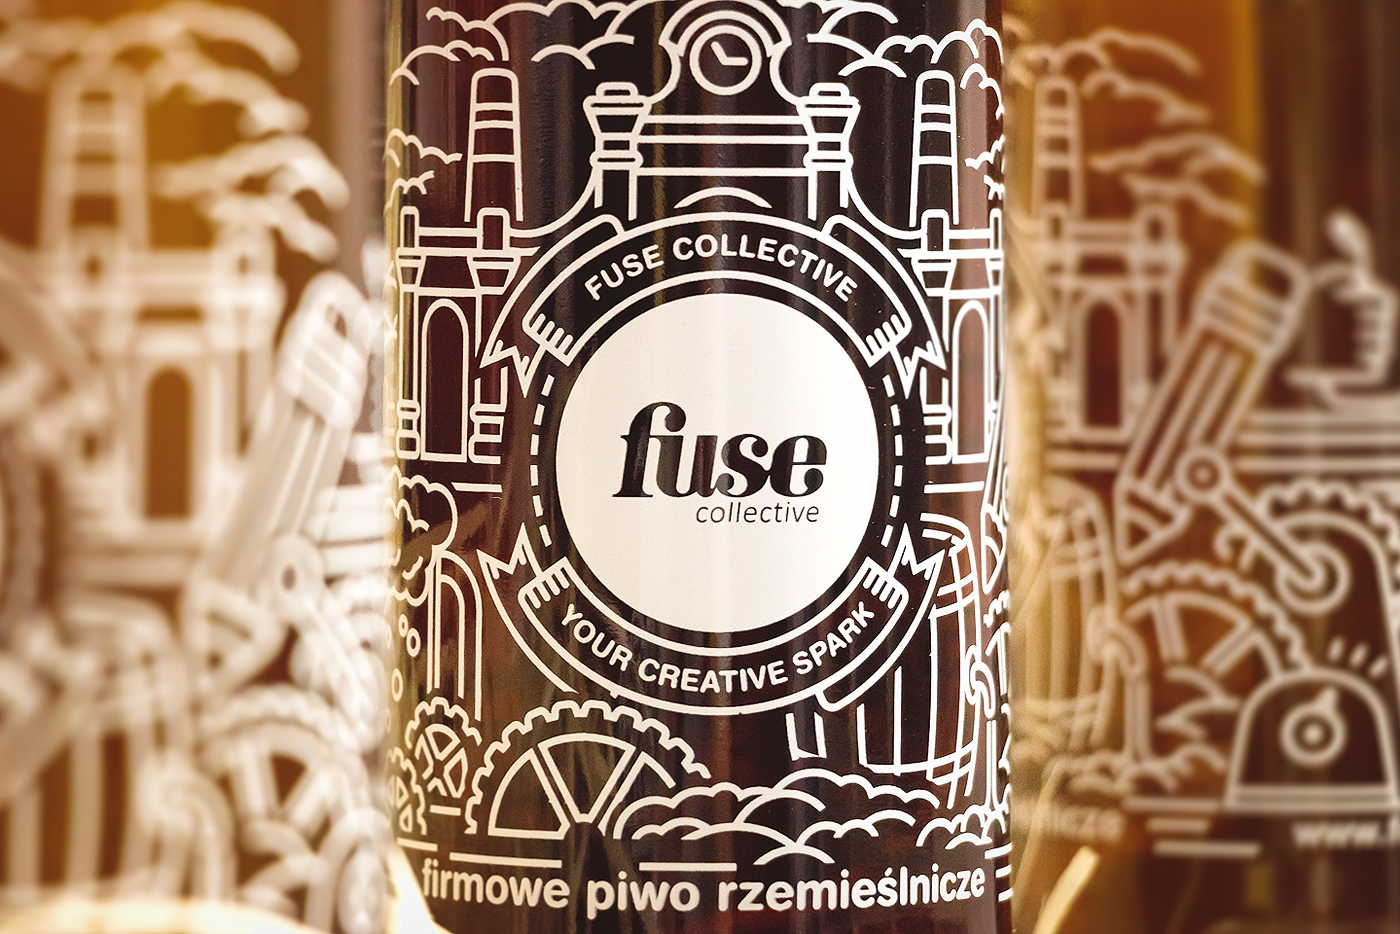 fuse Collective  fusecollective Christmas gift beer bottle lodz